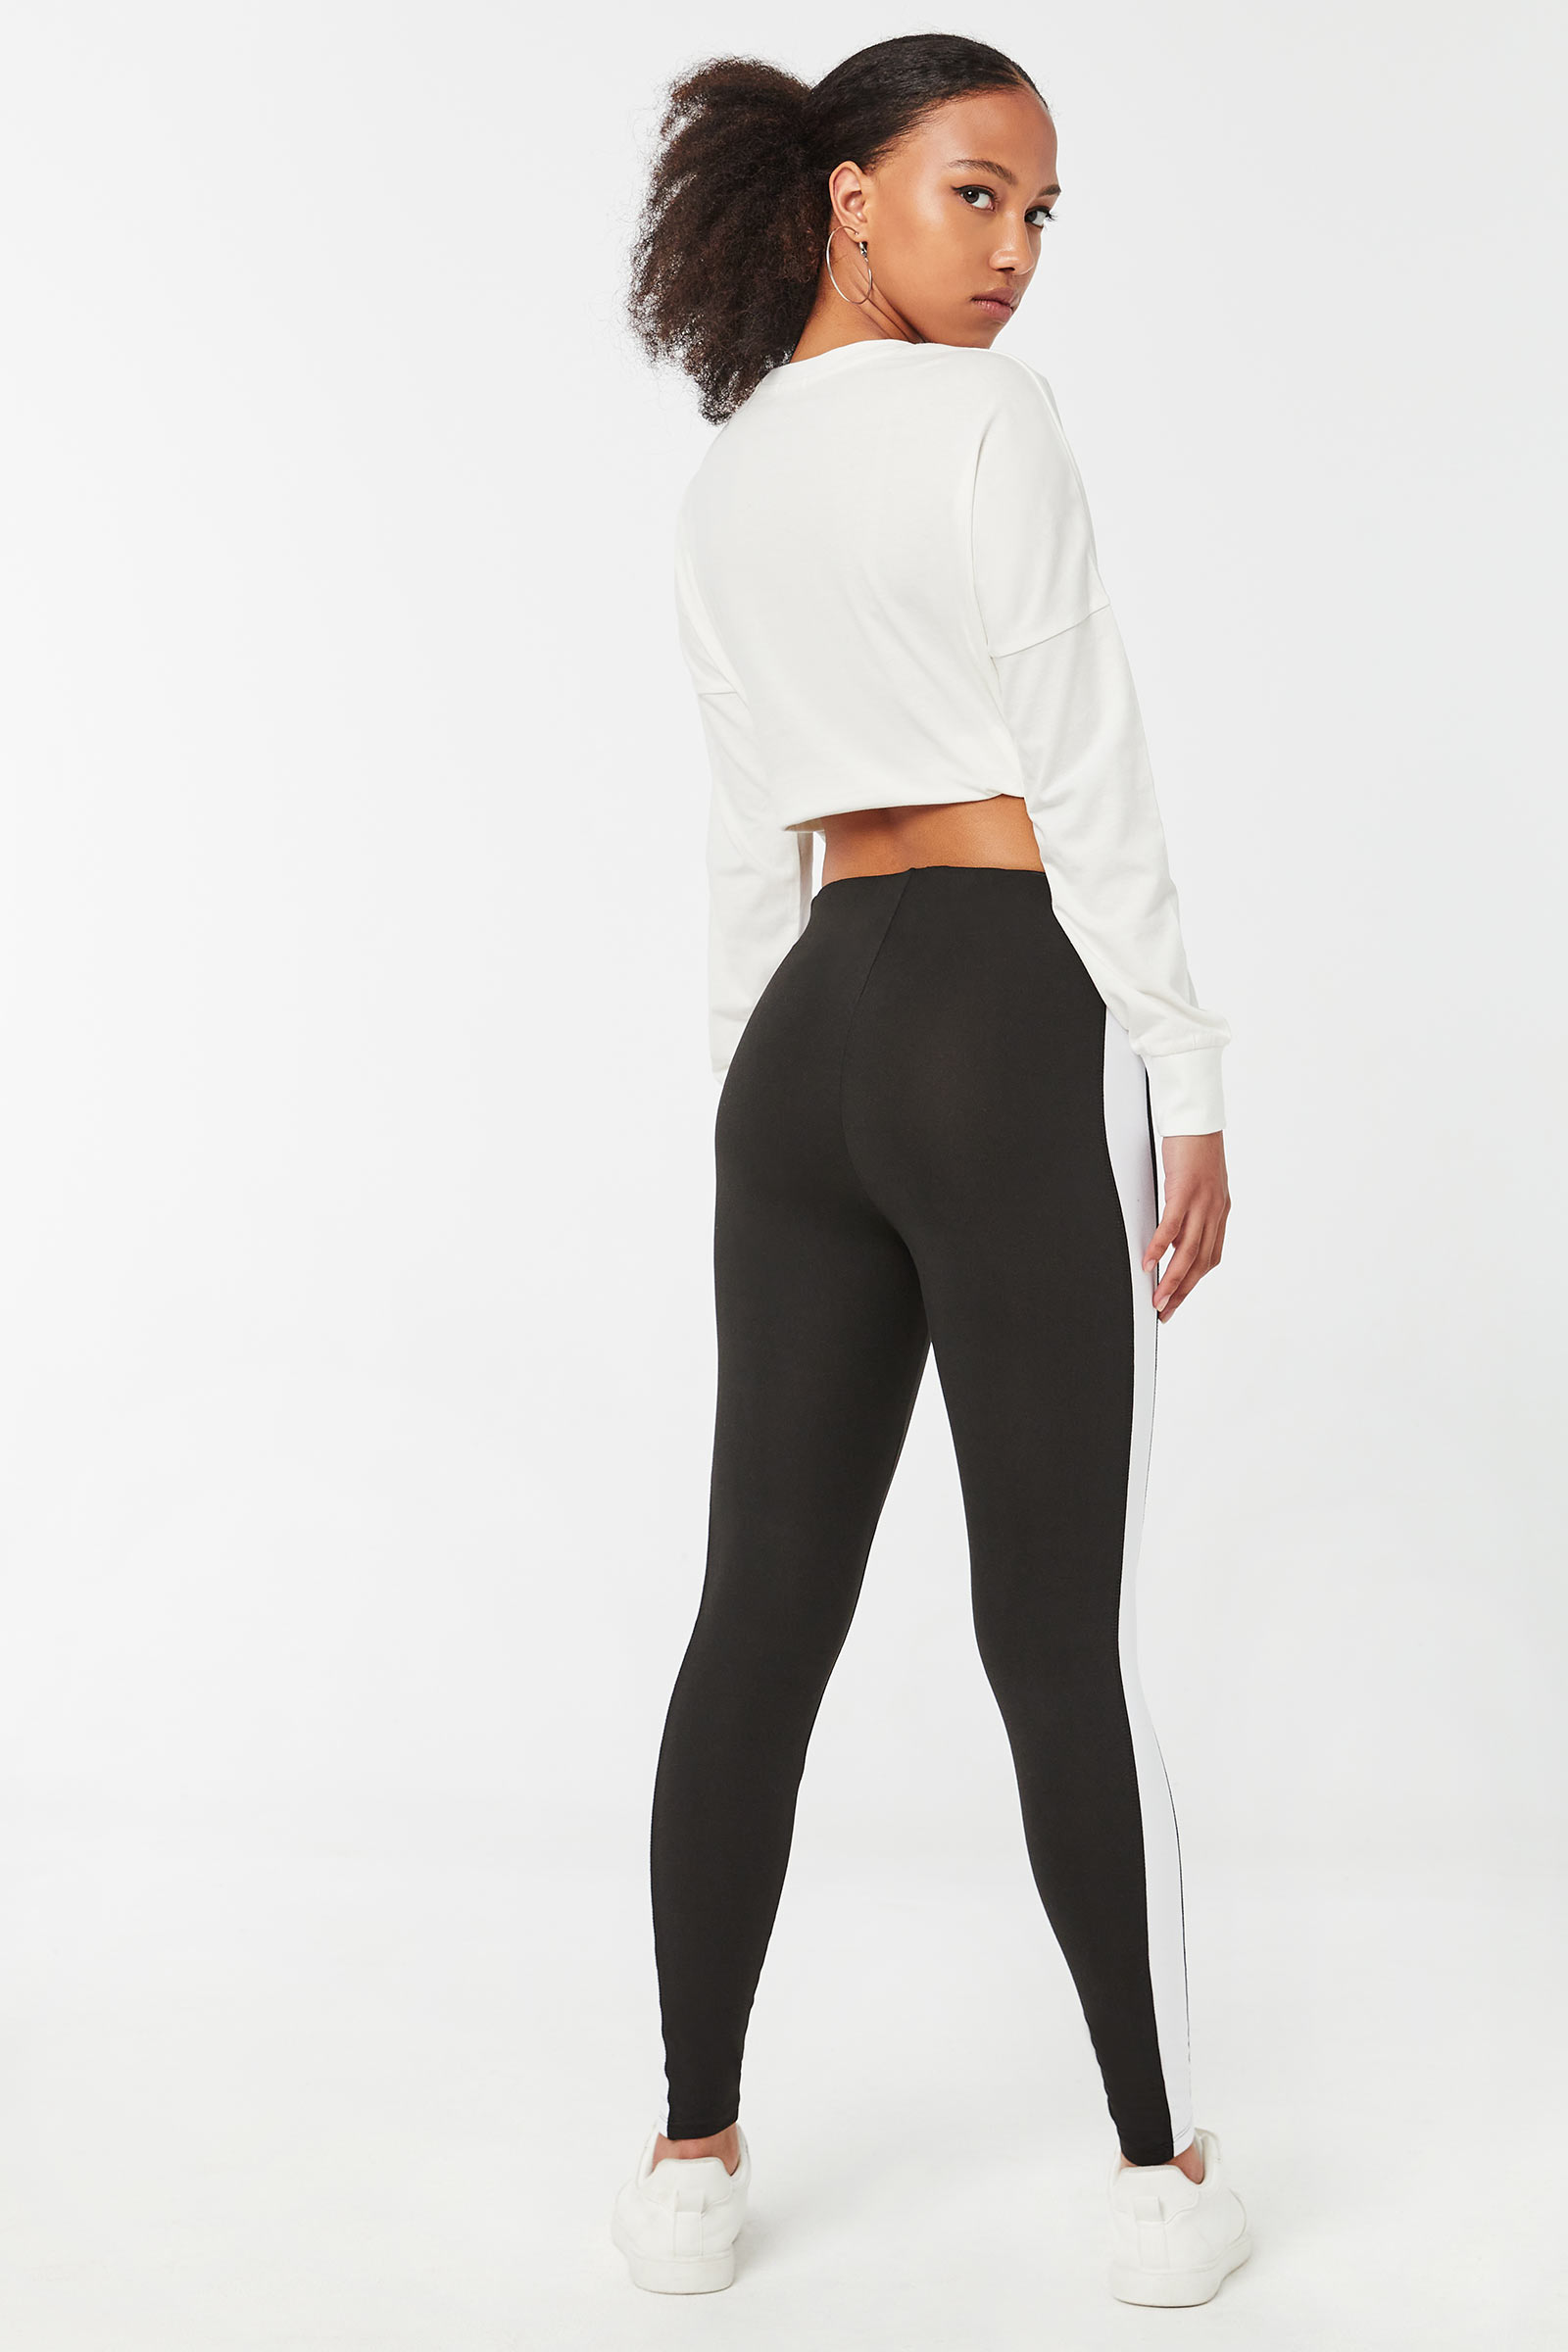 Leggings with Wide Side Bands